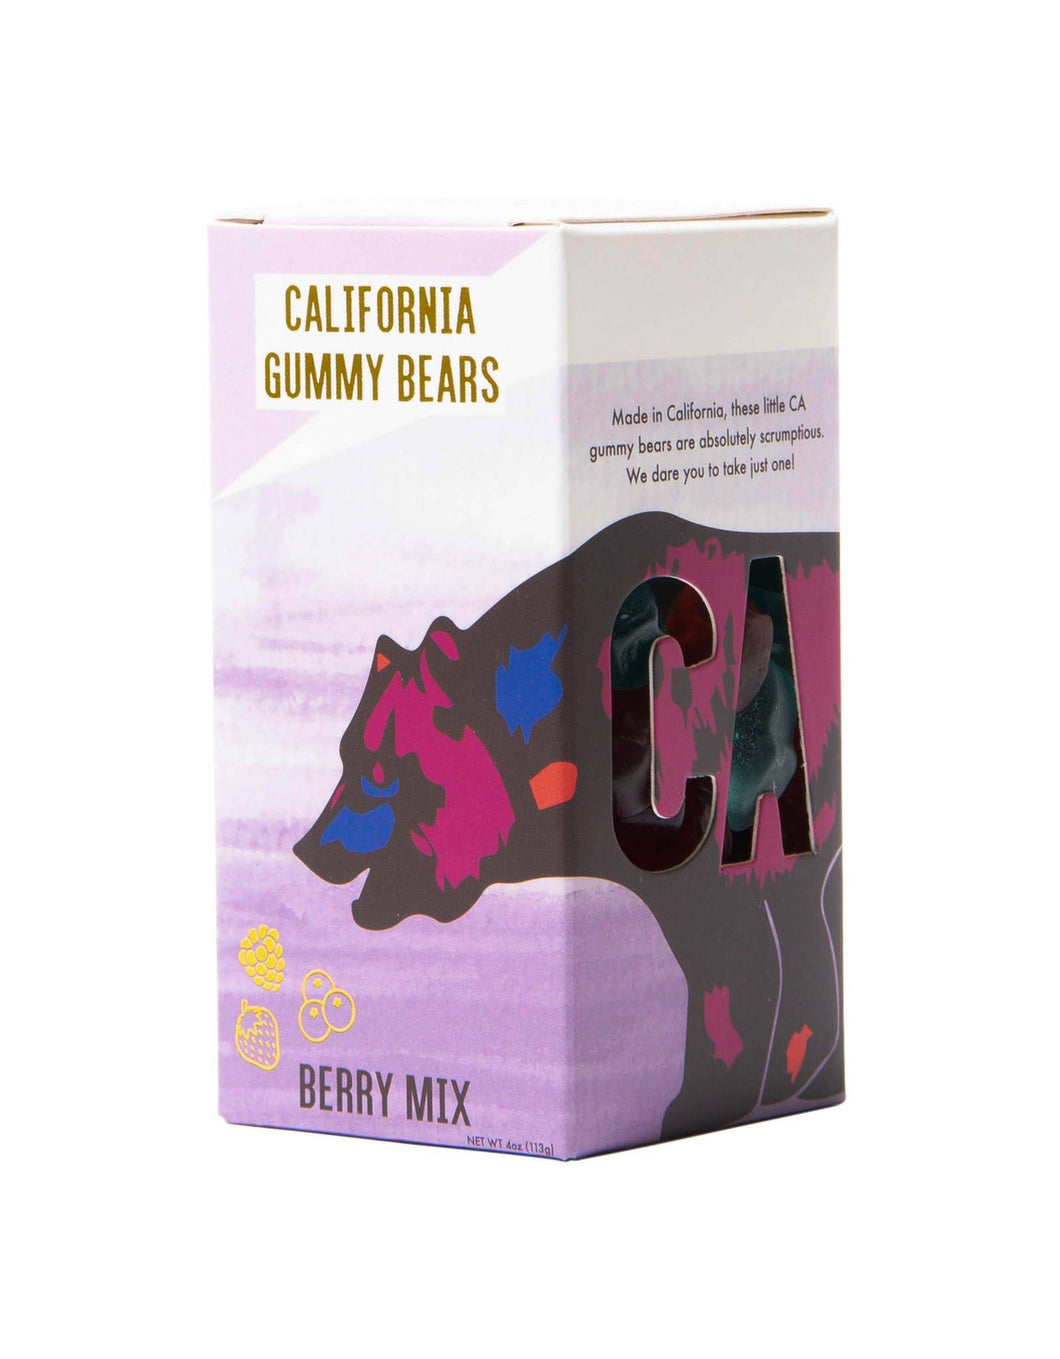 California Gummy Bears - Berry Mix